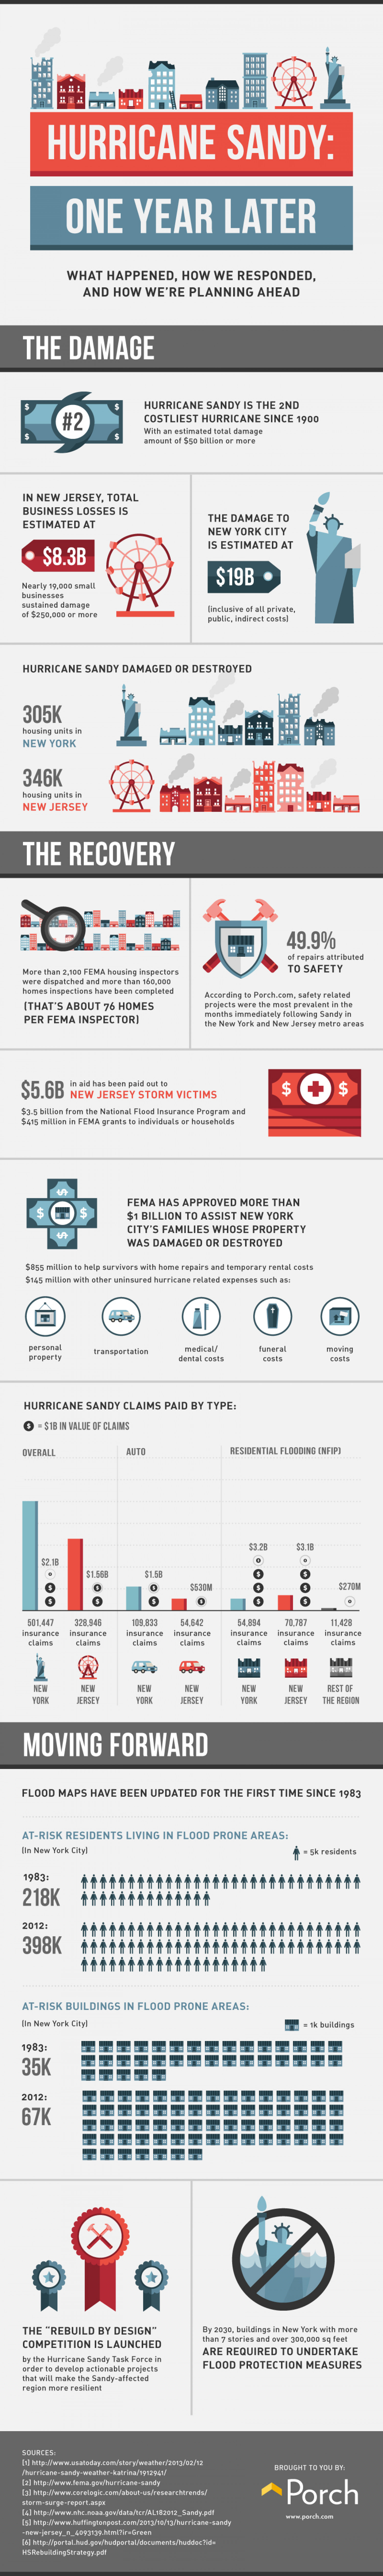 Hurricane Sandy: One Year Later Infographic